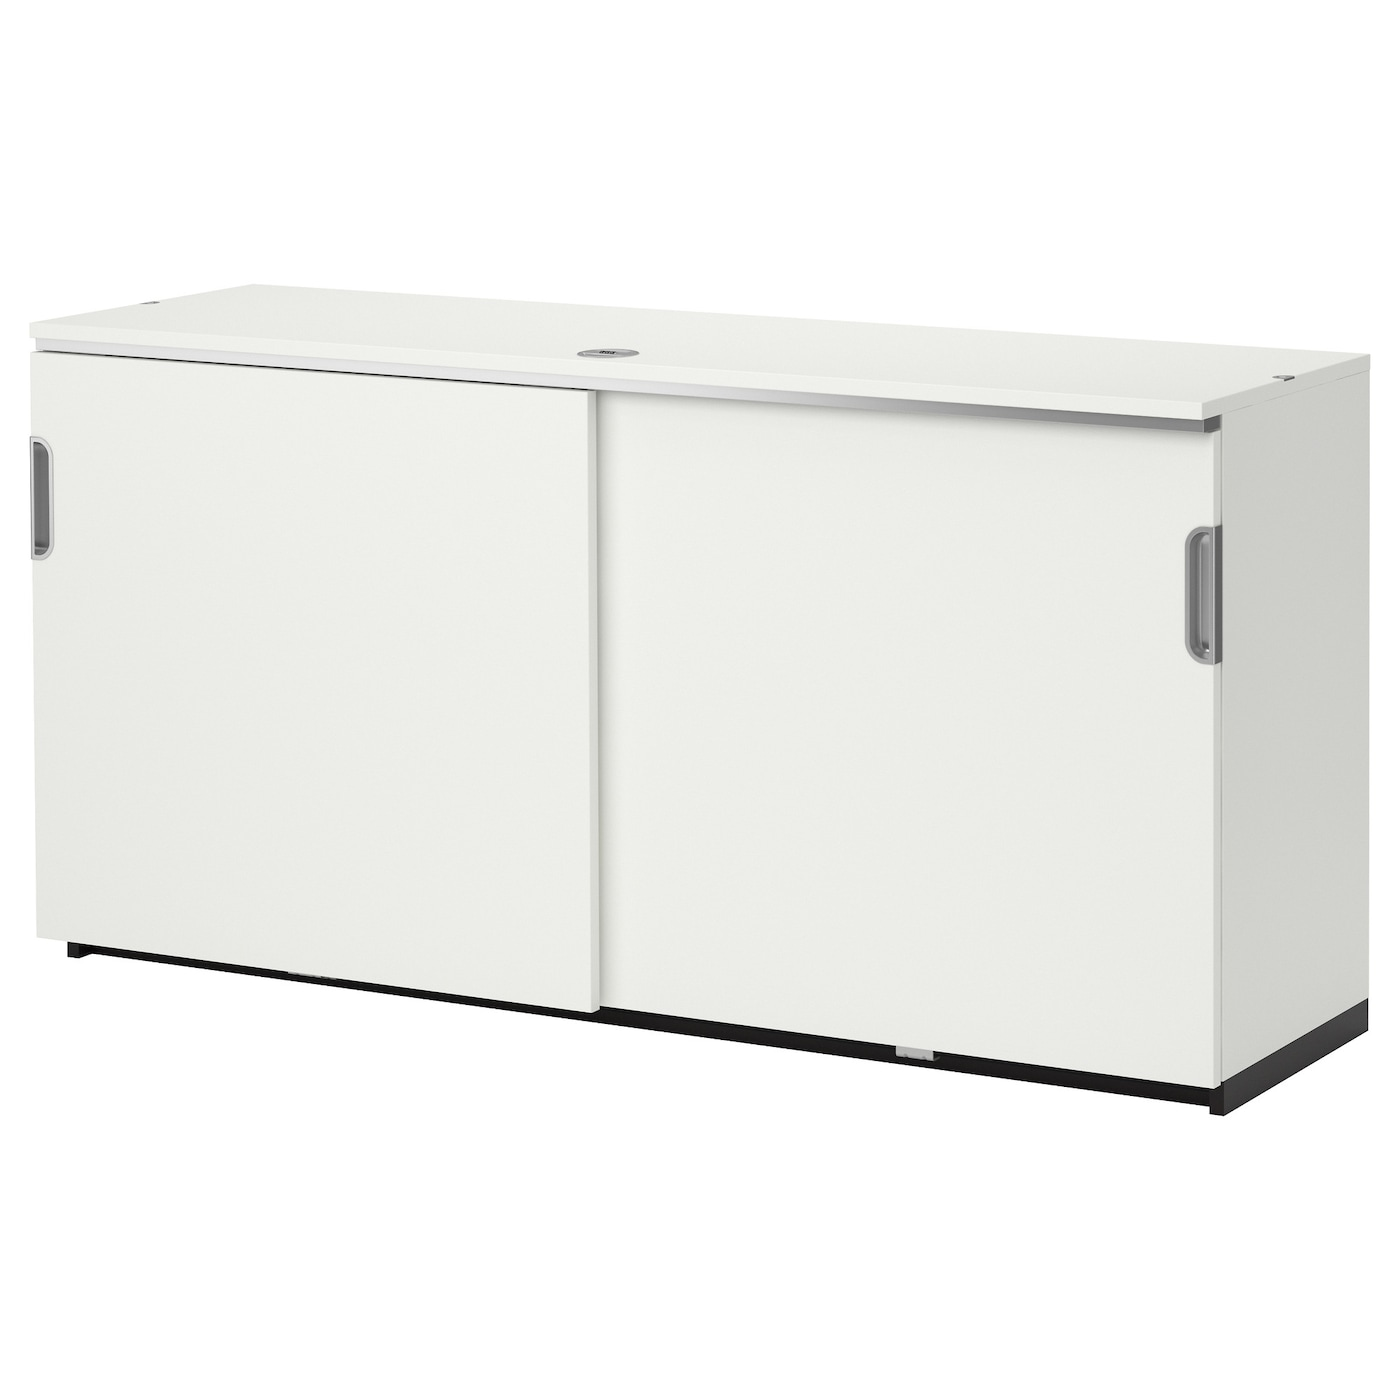 small office cabinets. IKEA GALANT Cabinet With Sliding Doors Integrated Damper Makes Close Silently And Gently Small Office Cabinets